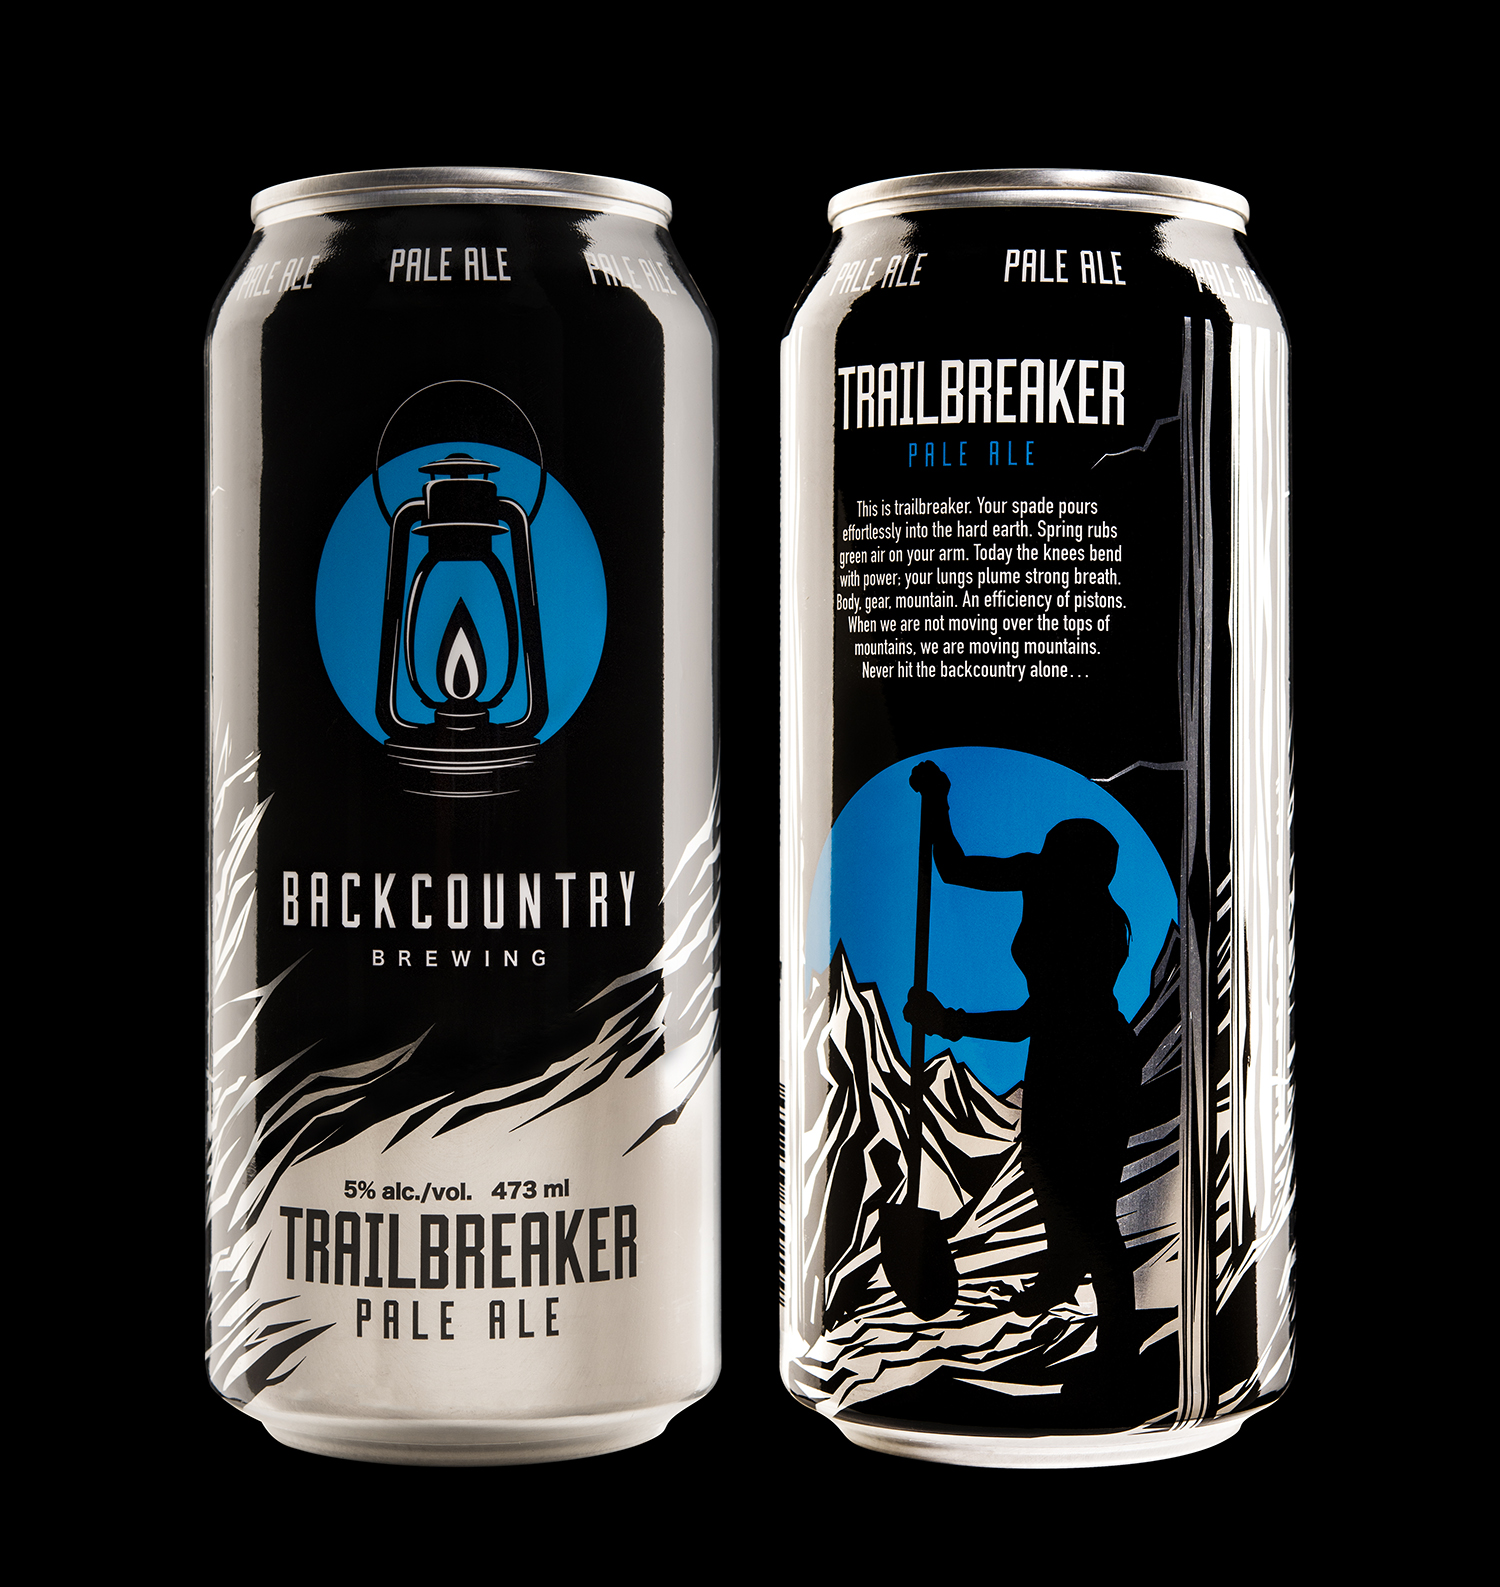 Branding and Packaging Design for Backcountry Brewing